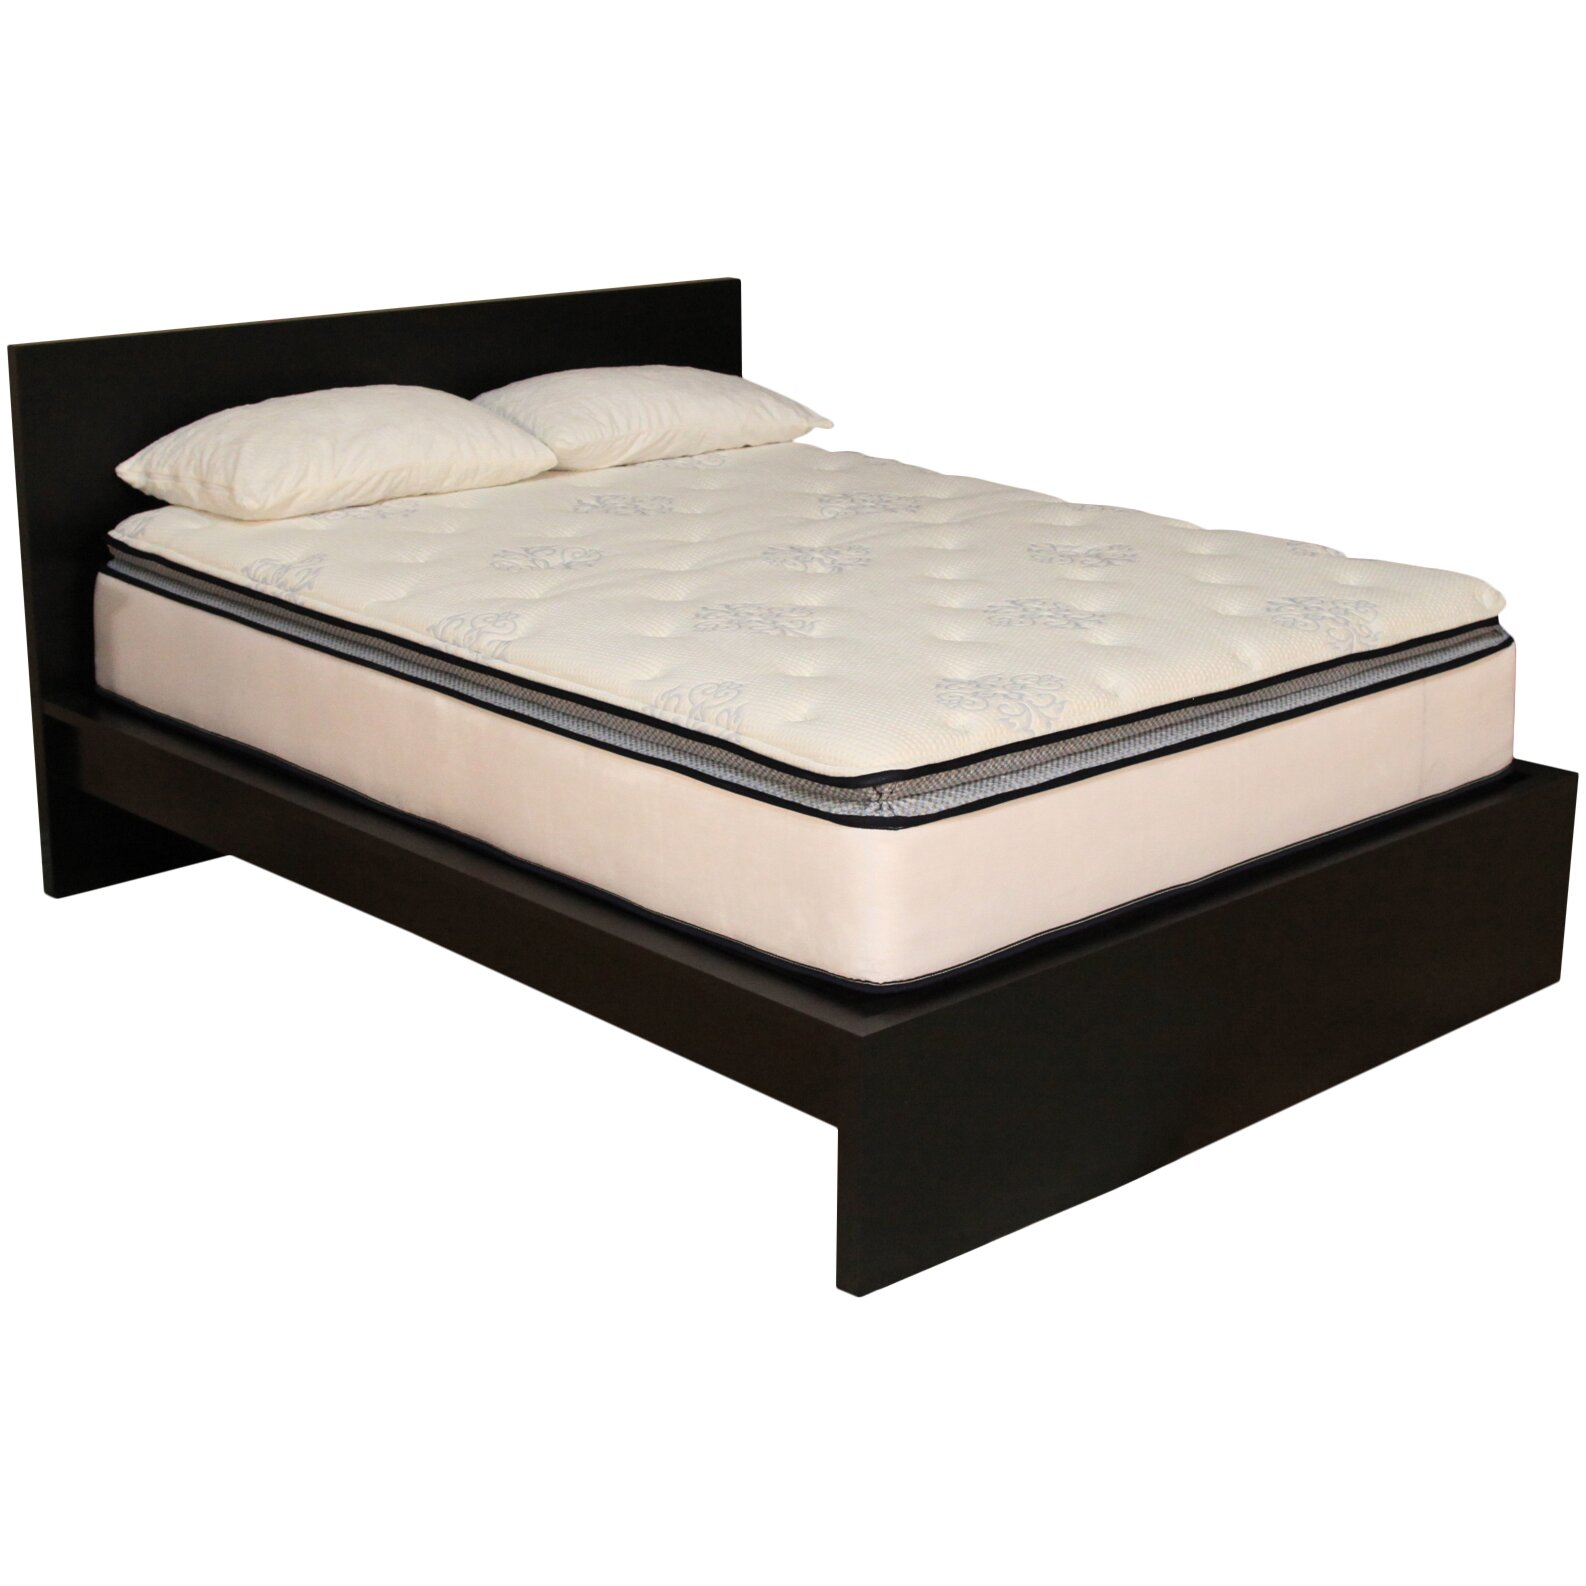 Brooklyn Bedding Dog Mattress